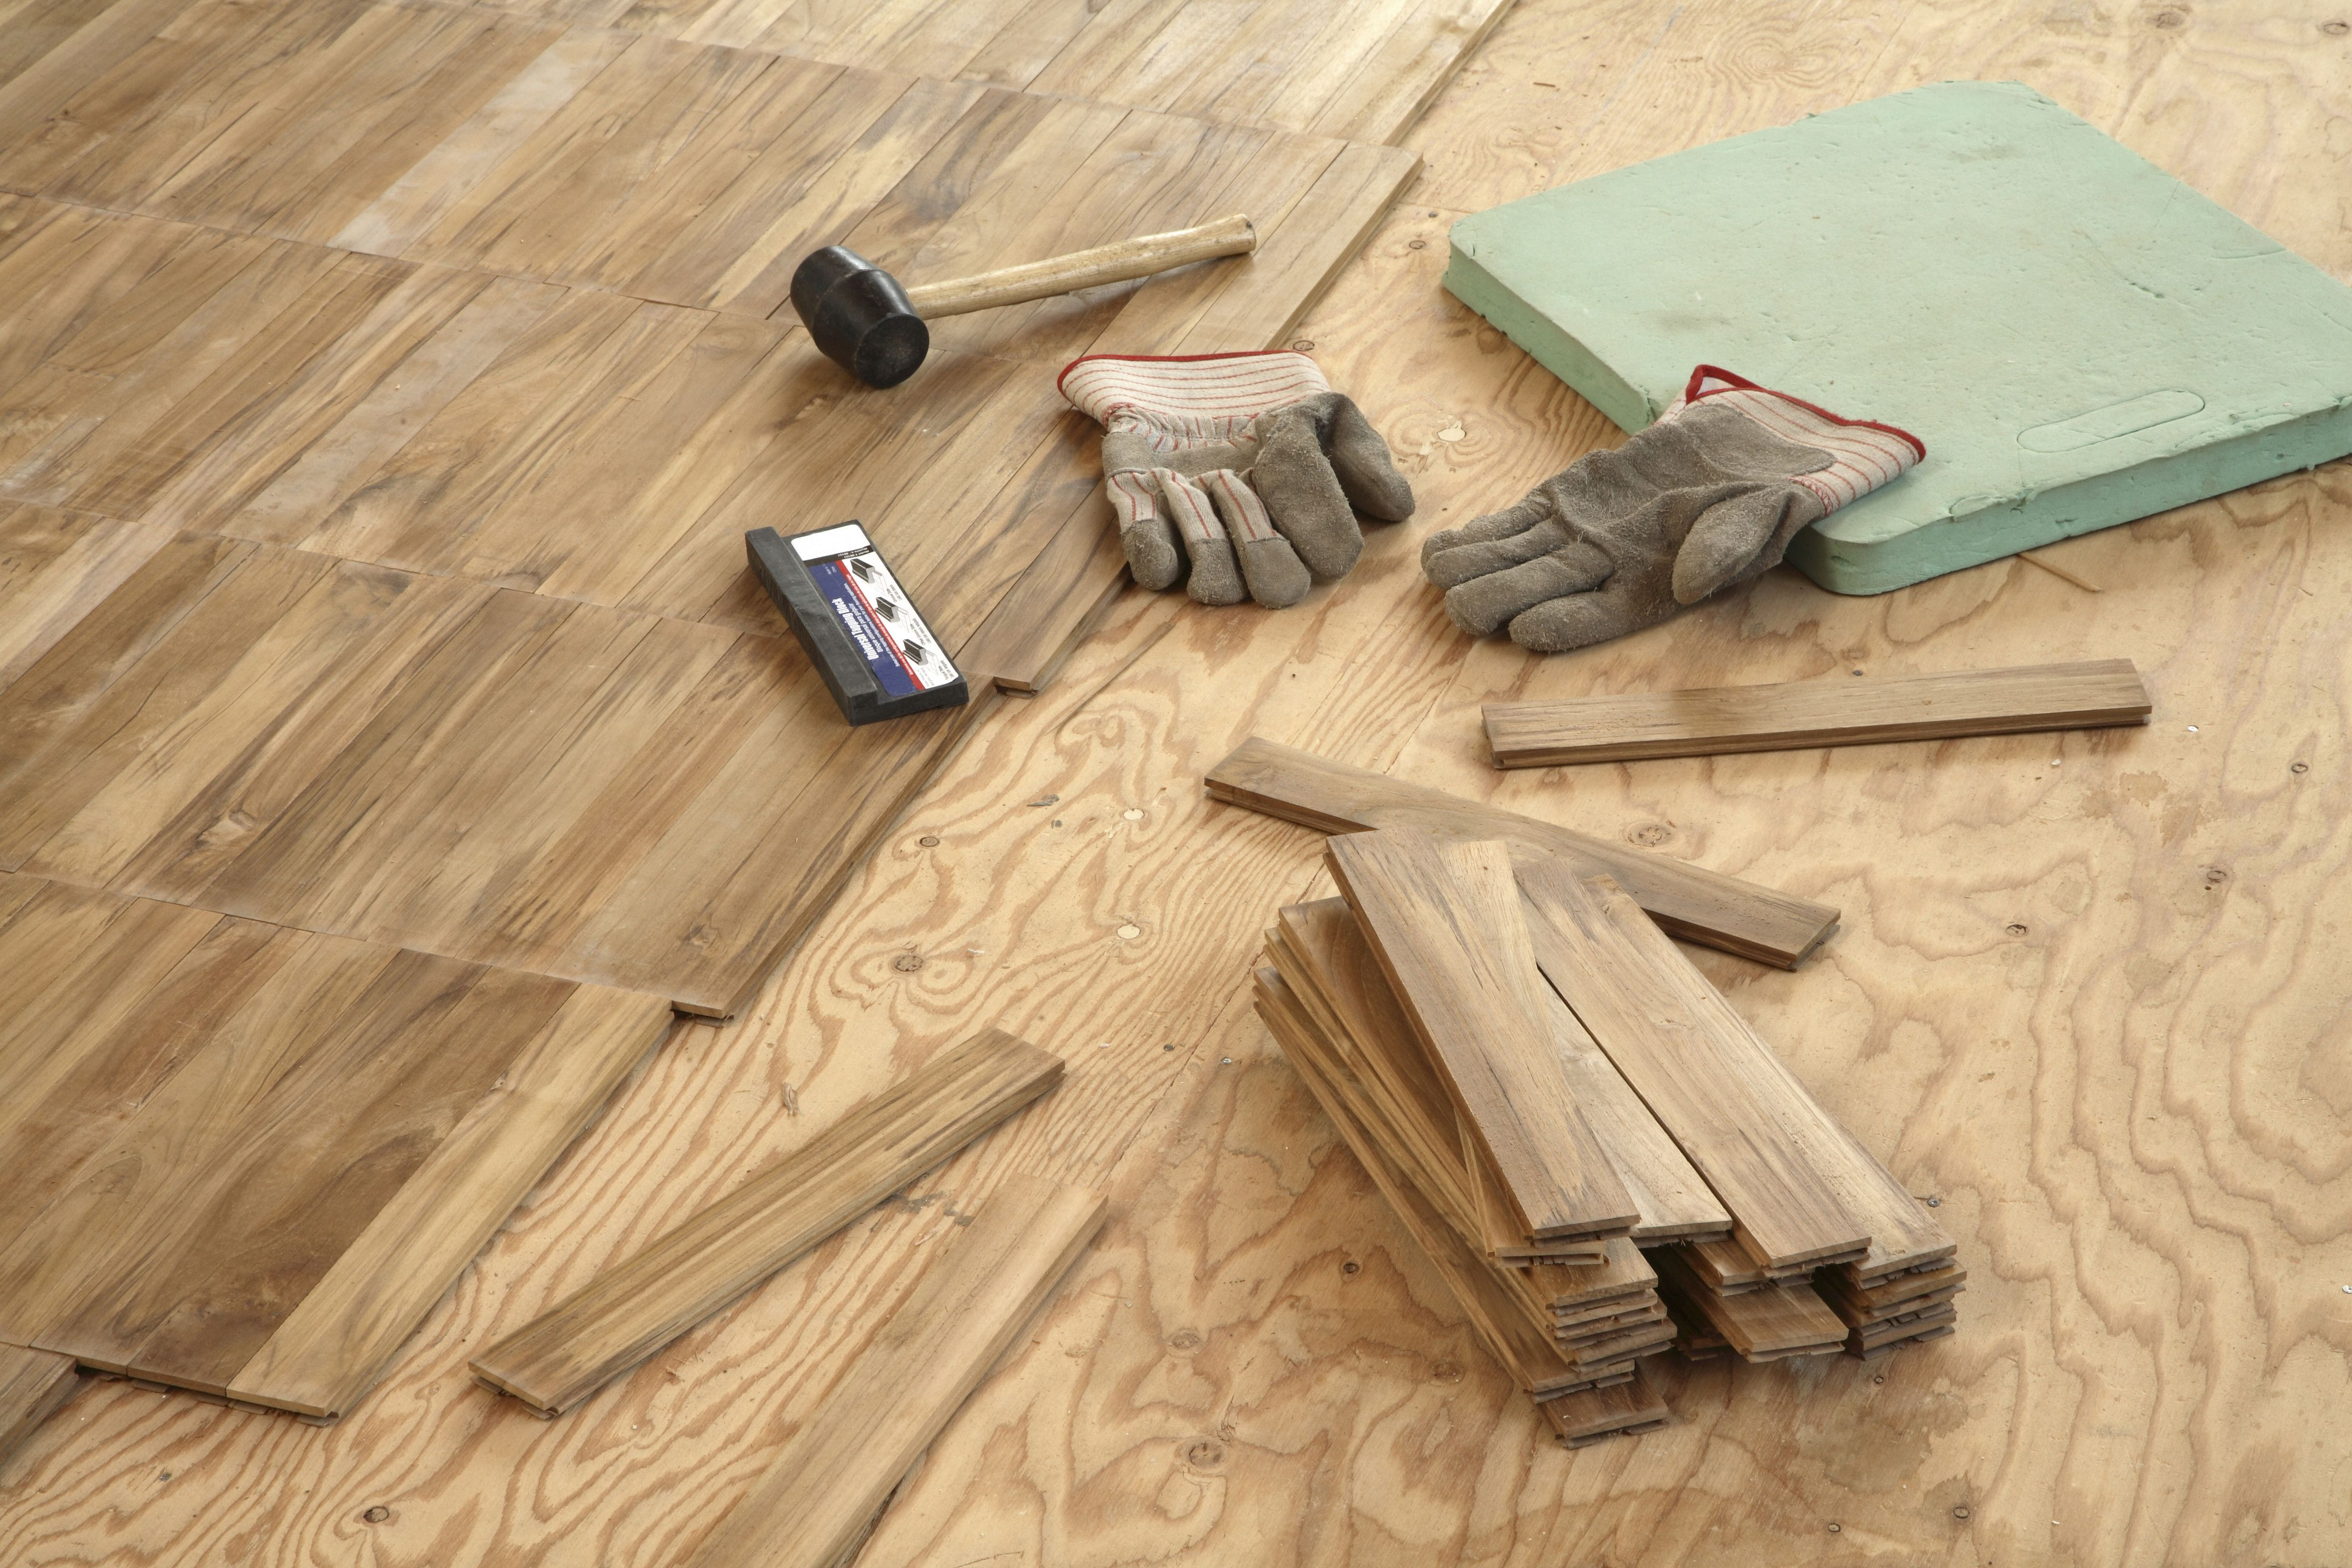 waterproof hardwood flooring home depot of plywood underlayment pros and cons types and brands inside plywoodunderlaymentunderwoodflooring 5ac24fbcae9ab8003781af25